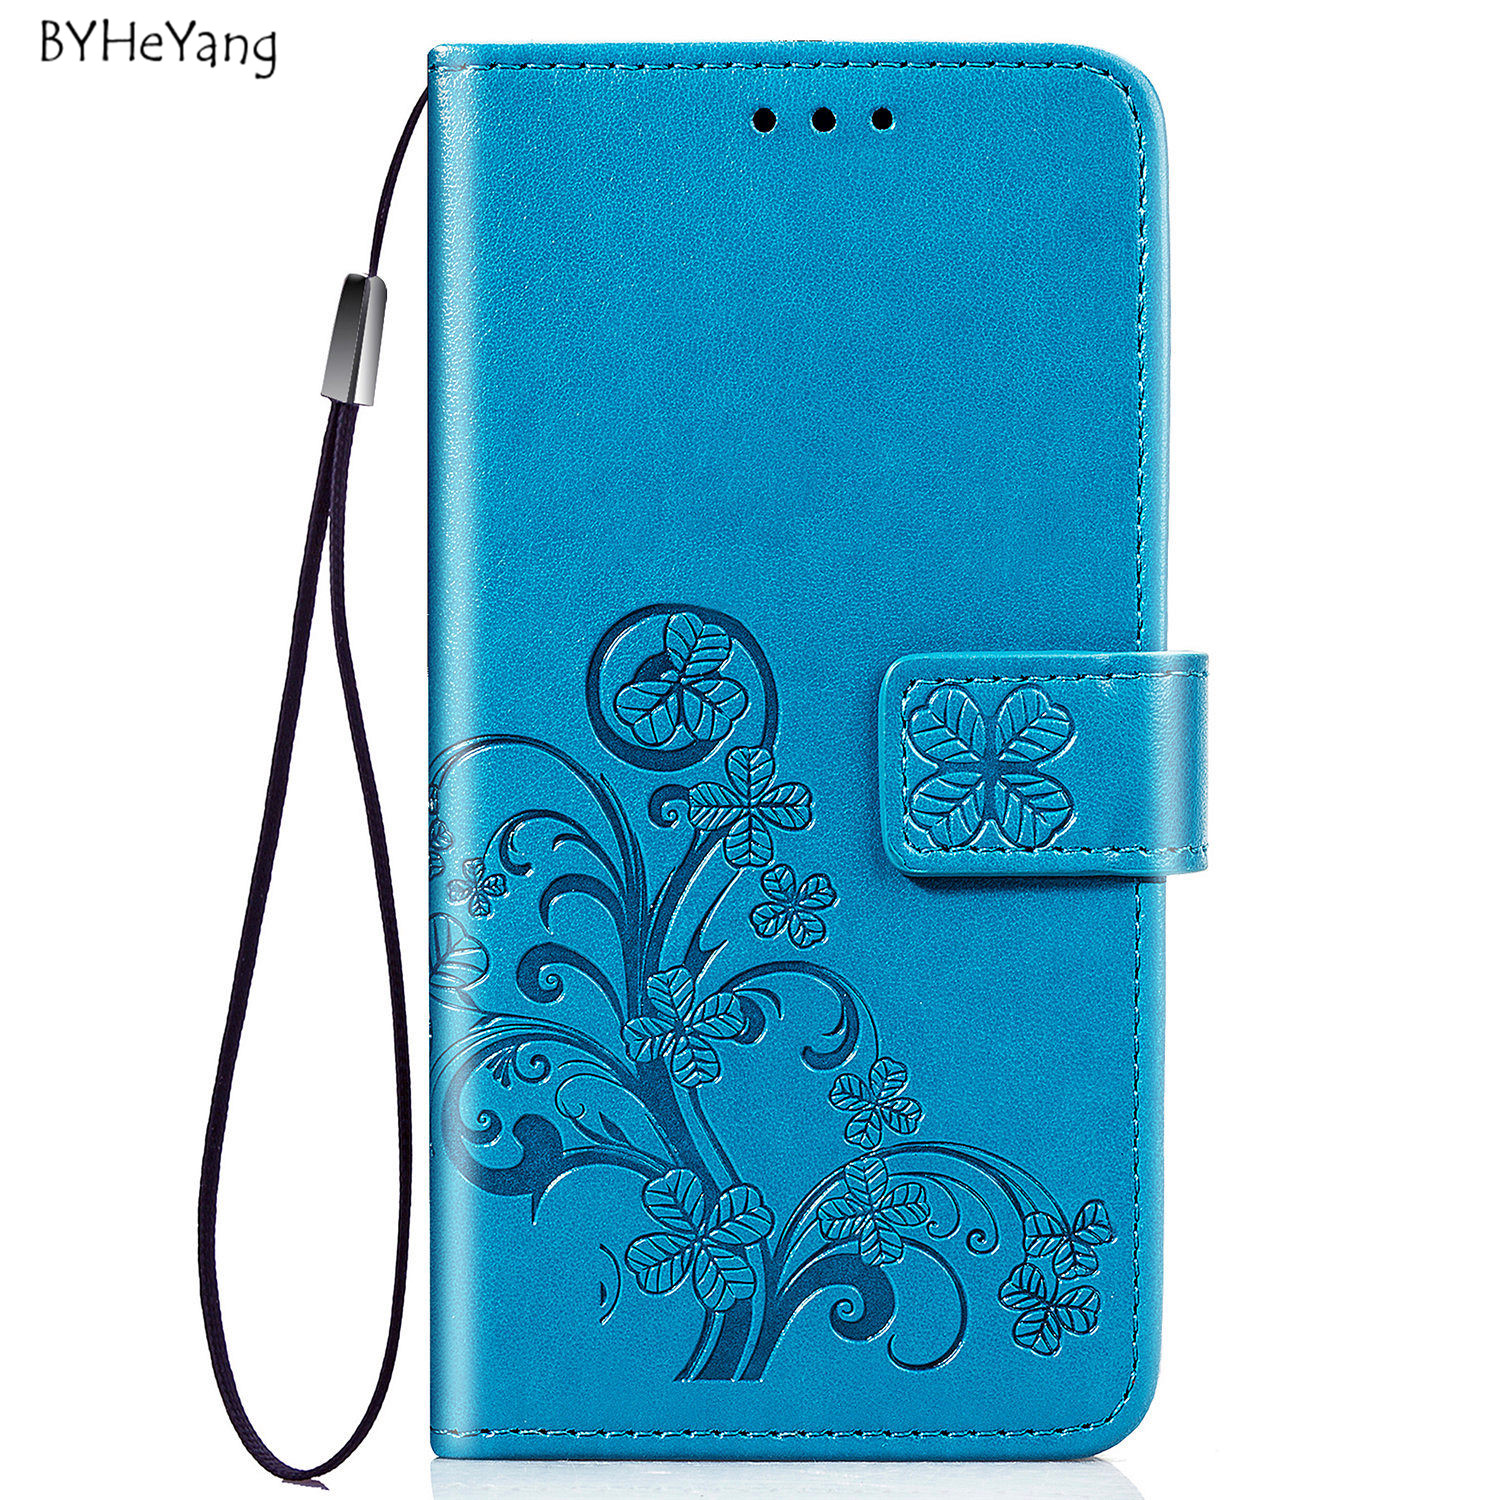 For Coque <font><b>OPPO</b></font> <font><b>A5</b></font> 2020 PCHT30 <font><b>Case</b></font> Luxury Bag PU Leather Phone <font><b>Case</b></font> Cover Protective Shell For Capa <font><b>OPPO</b></font> A9 2020 PCHM30 <font><b>Case</b></font> image